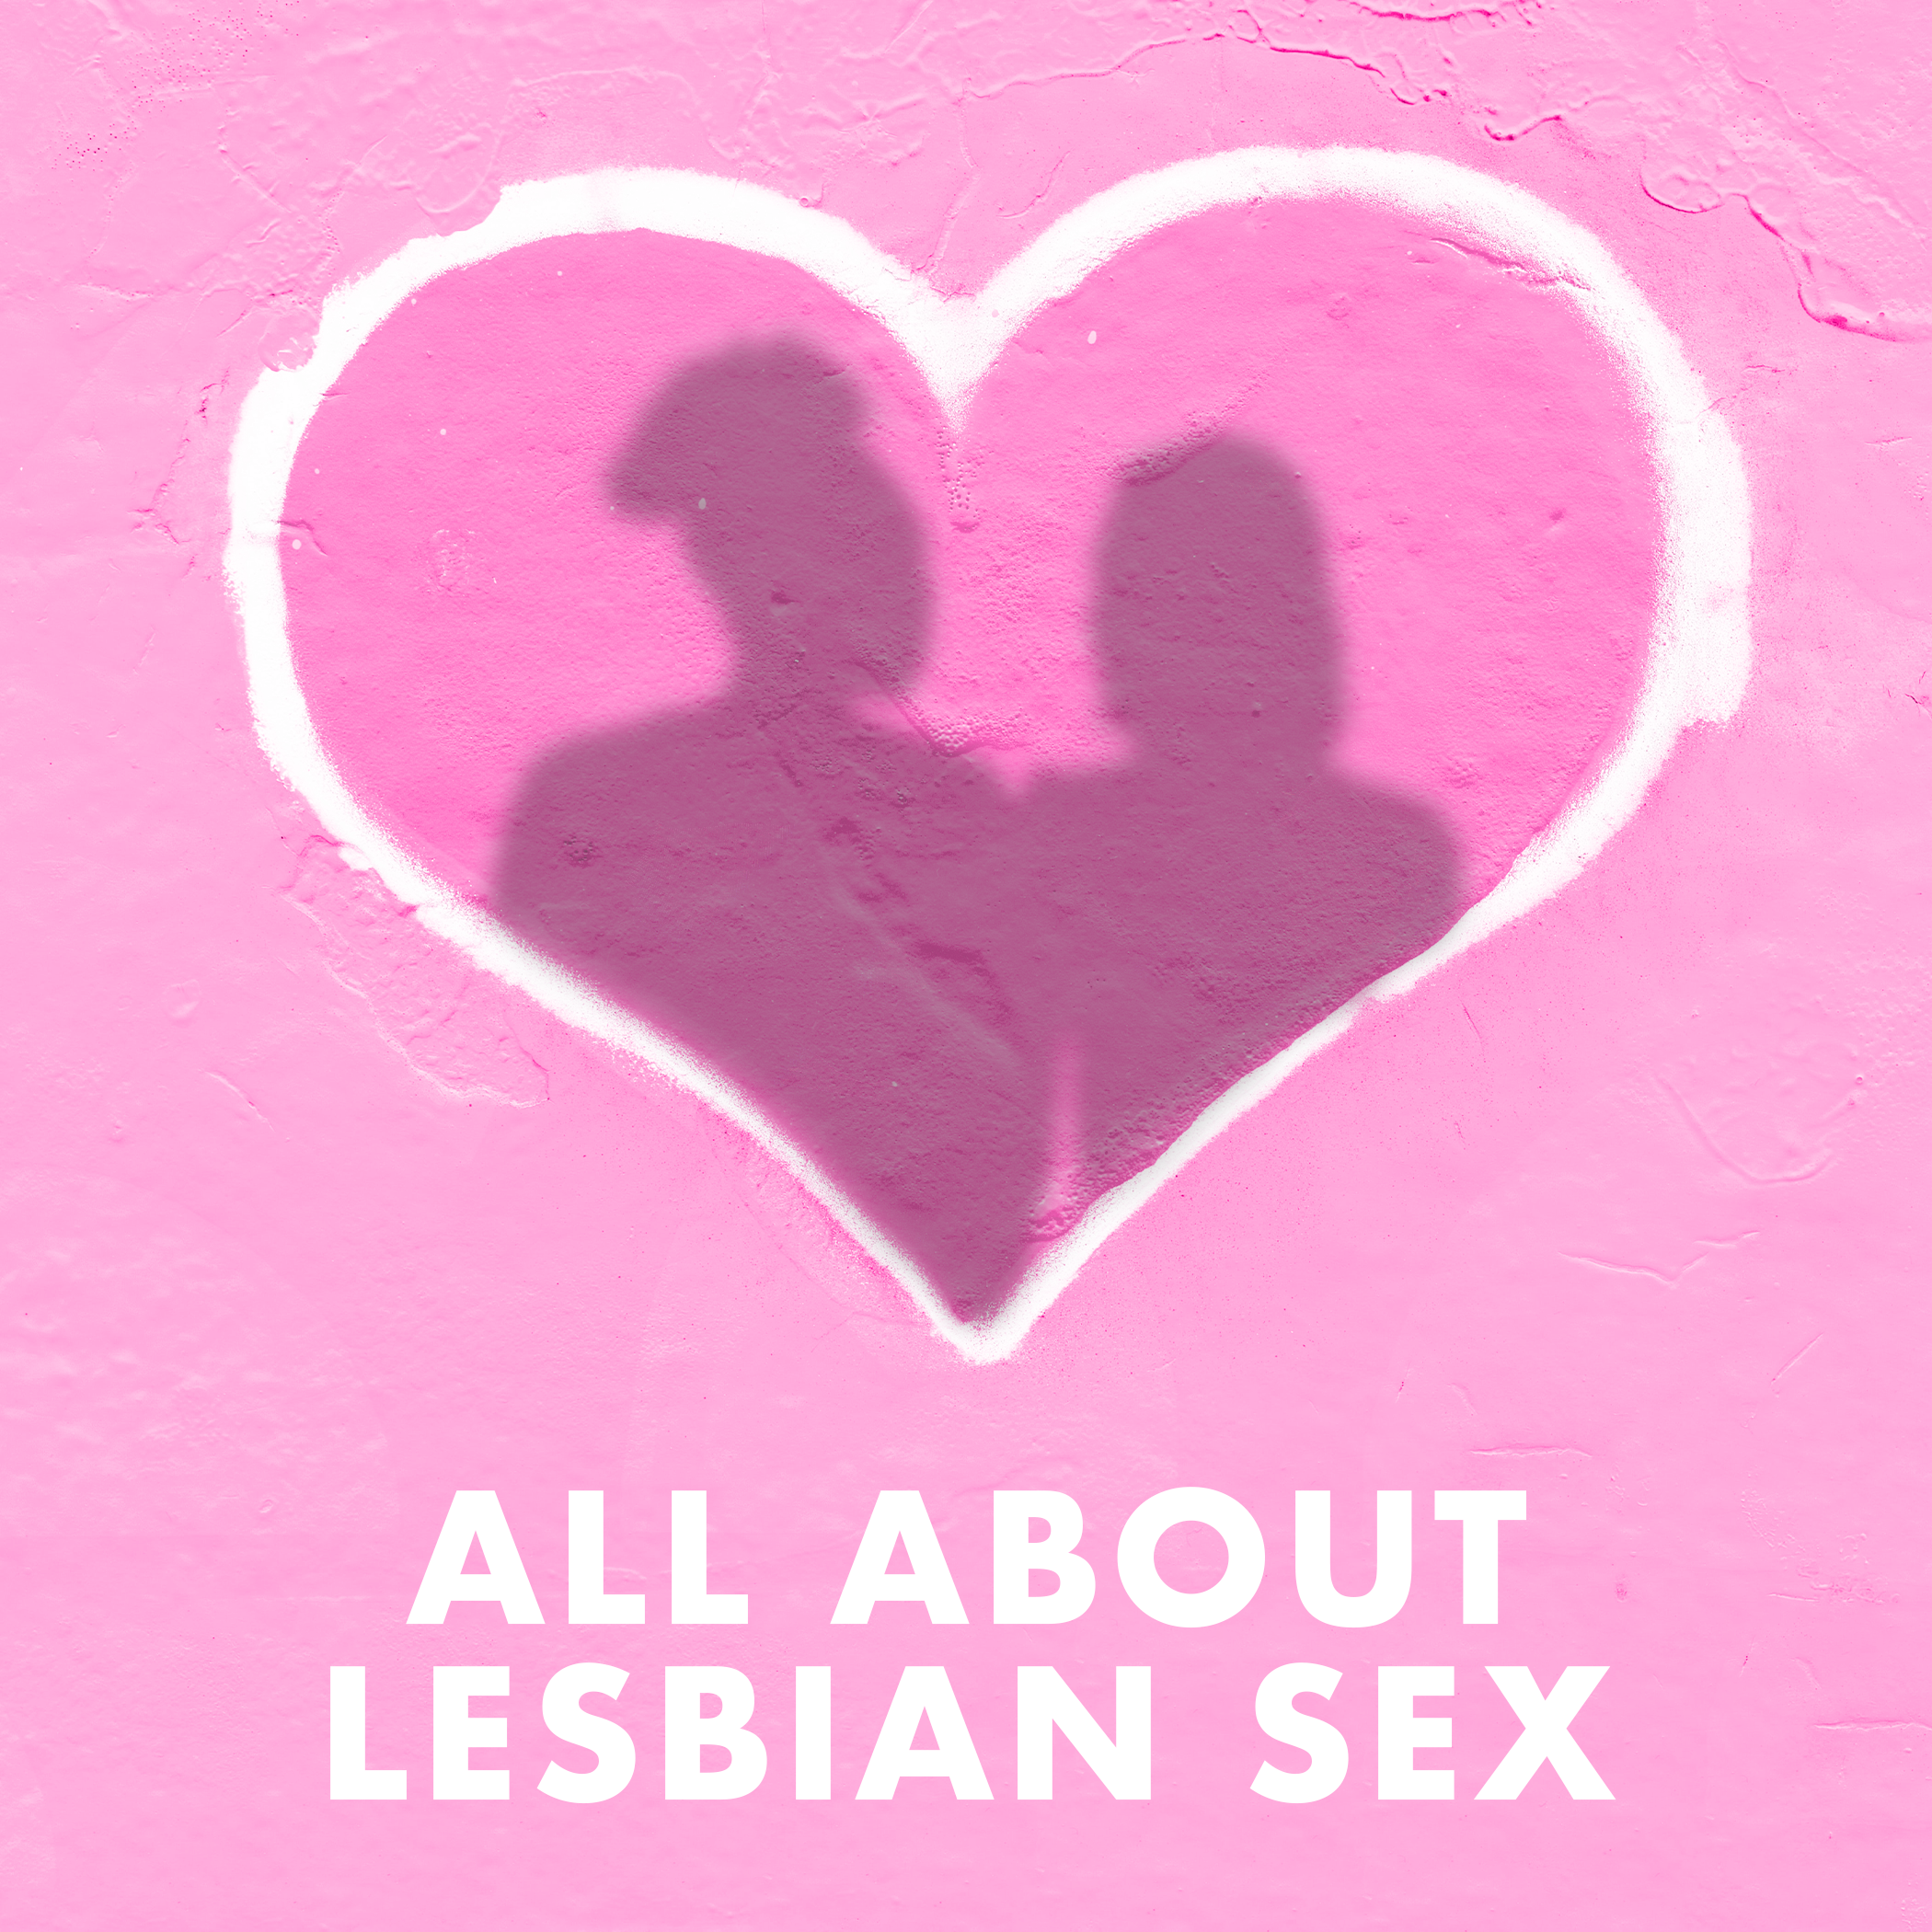 a guide to lesbian sex by the skinny confidential